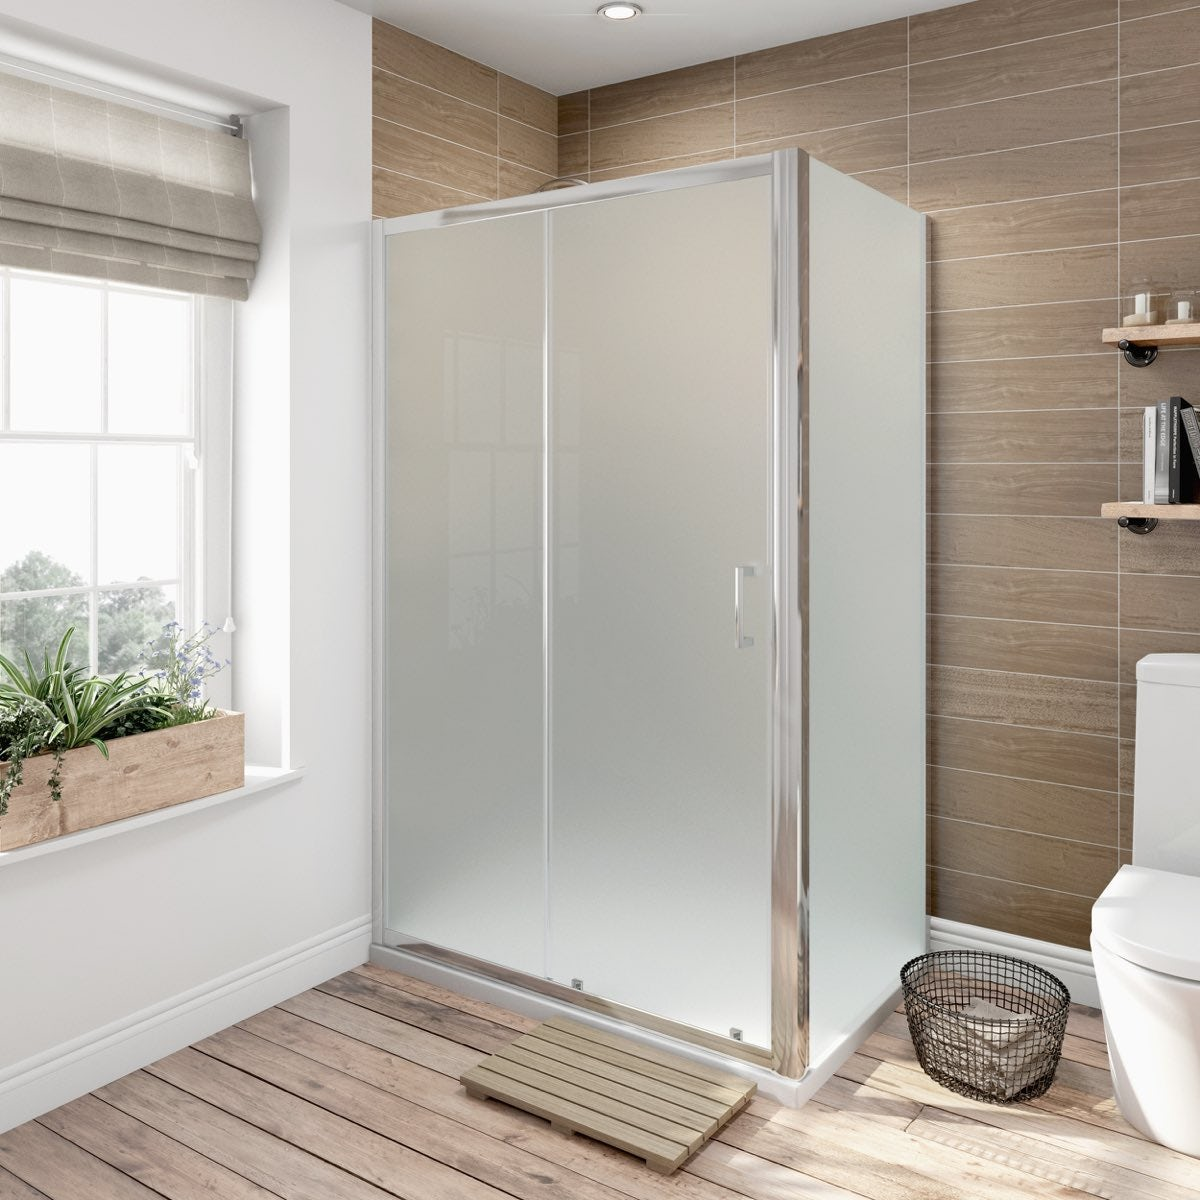 frosted glass shower enclosure. Frosted Glass Shower Enclosure W